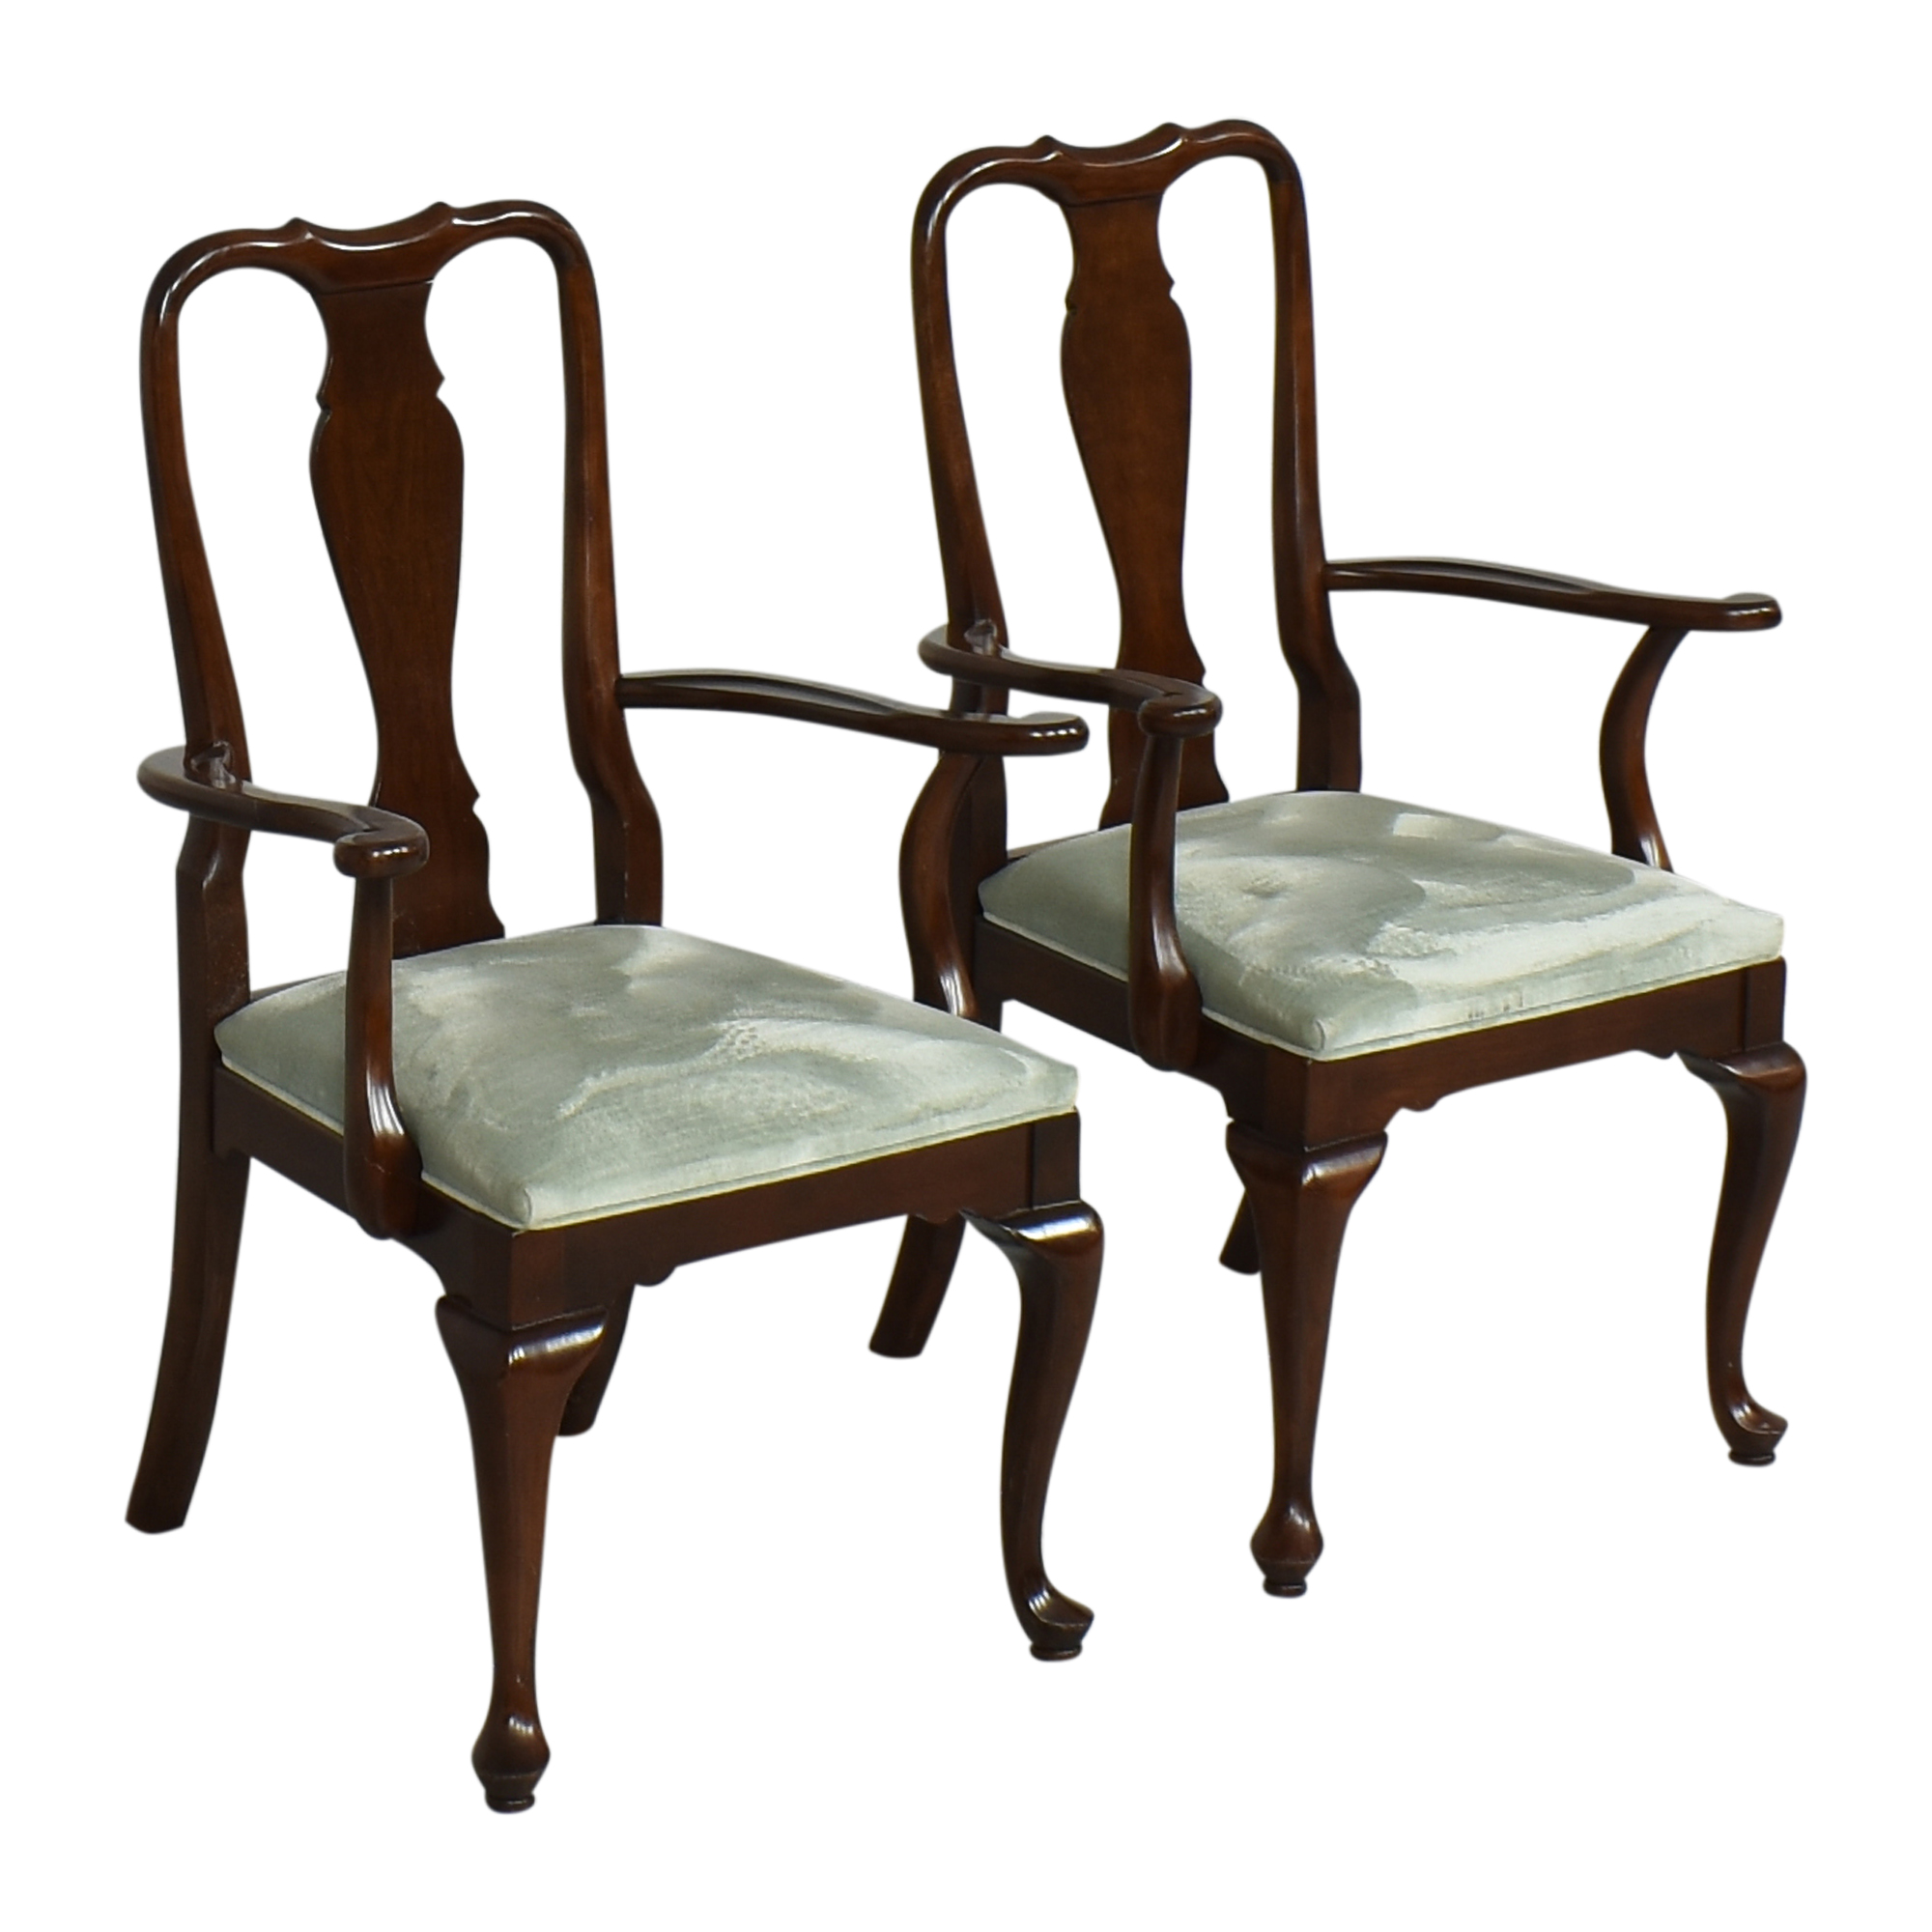 Ethan Allen Ethan Allen Georgian Court Dining Arm Chairs used